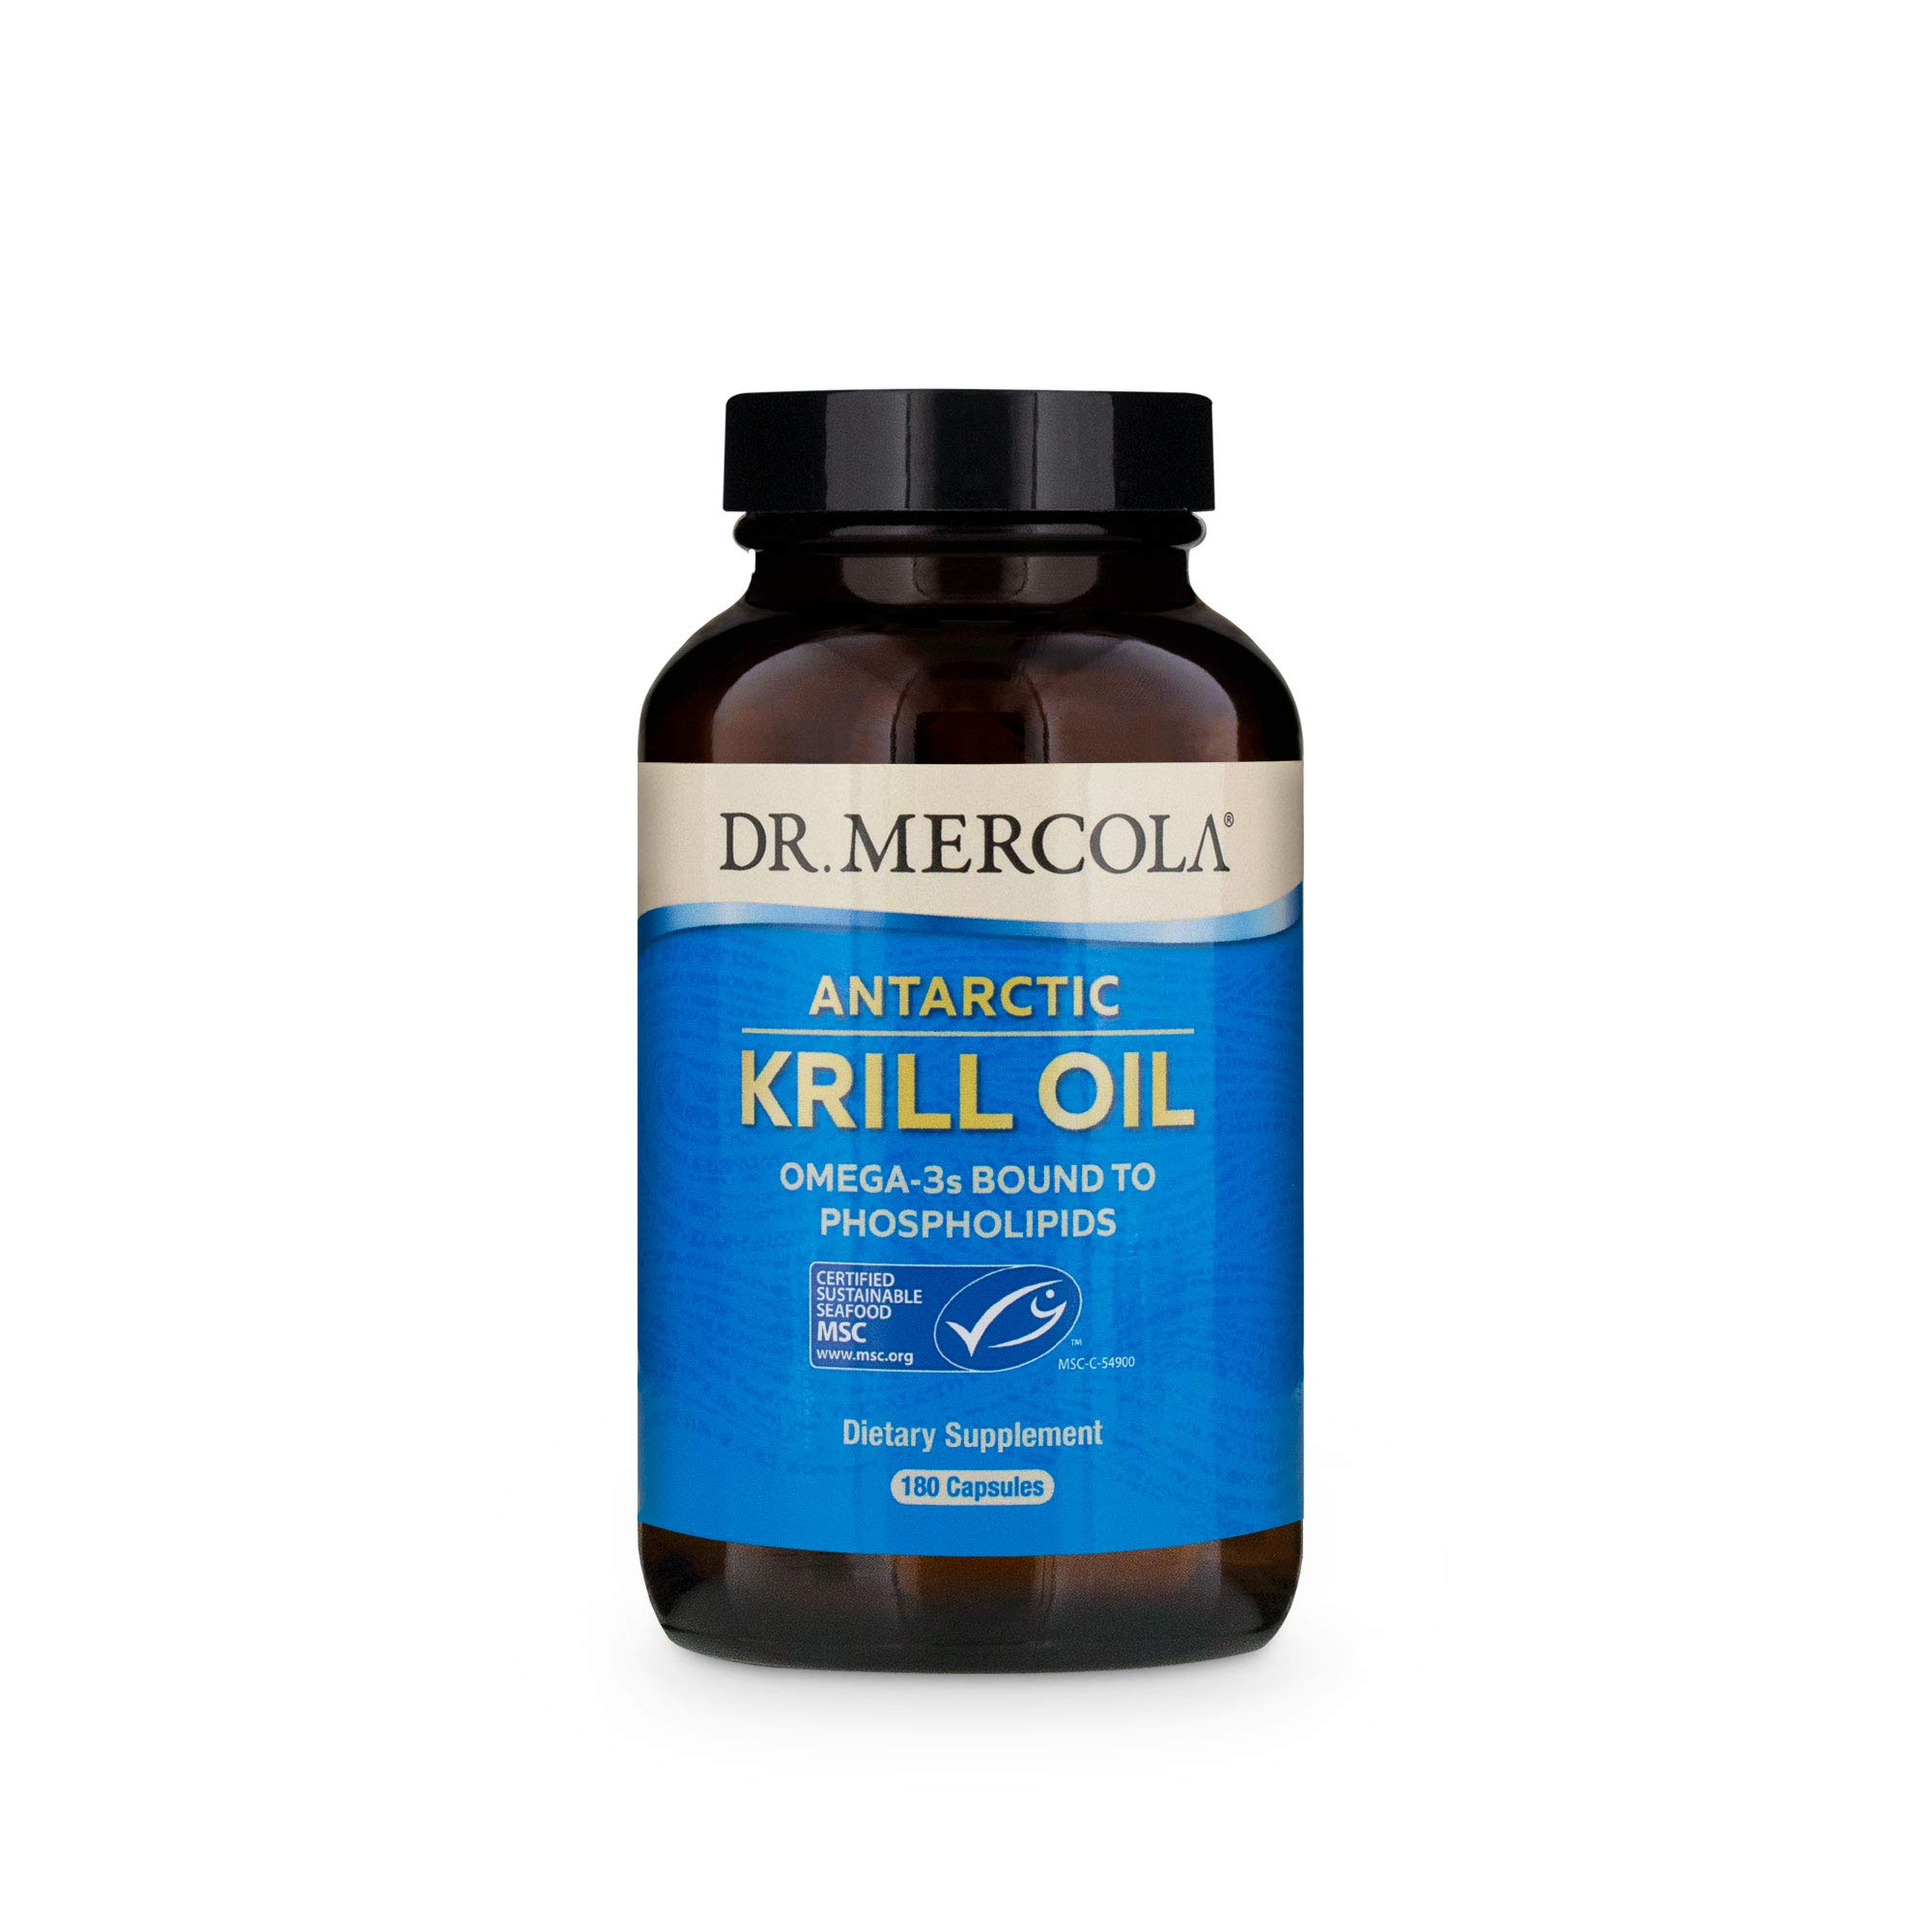 Dr. Mercola, Antarctic Krill Oil, 90 Servings (180 Capsules), Support a Healthy Heart, Overall Joint Comfort and Immune Function, MSC Certified, Non GMO, Soy-Free, Gluten Free by Dr. Mercola